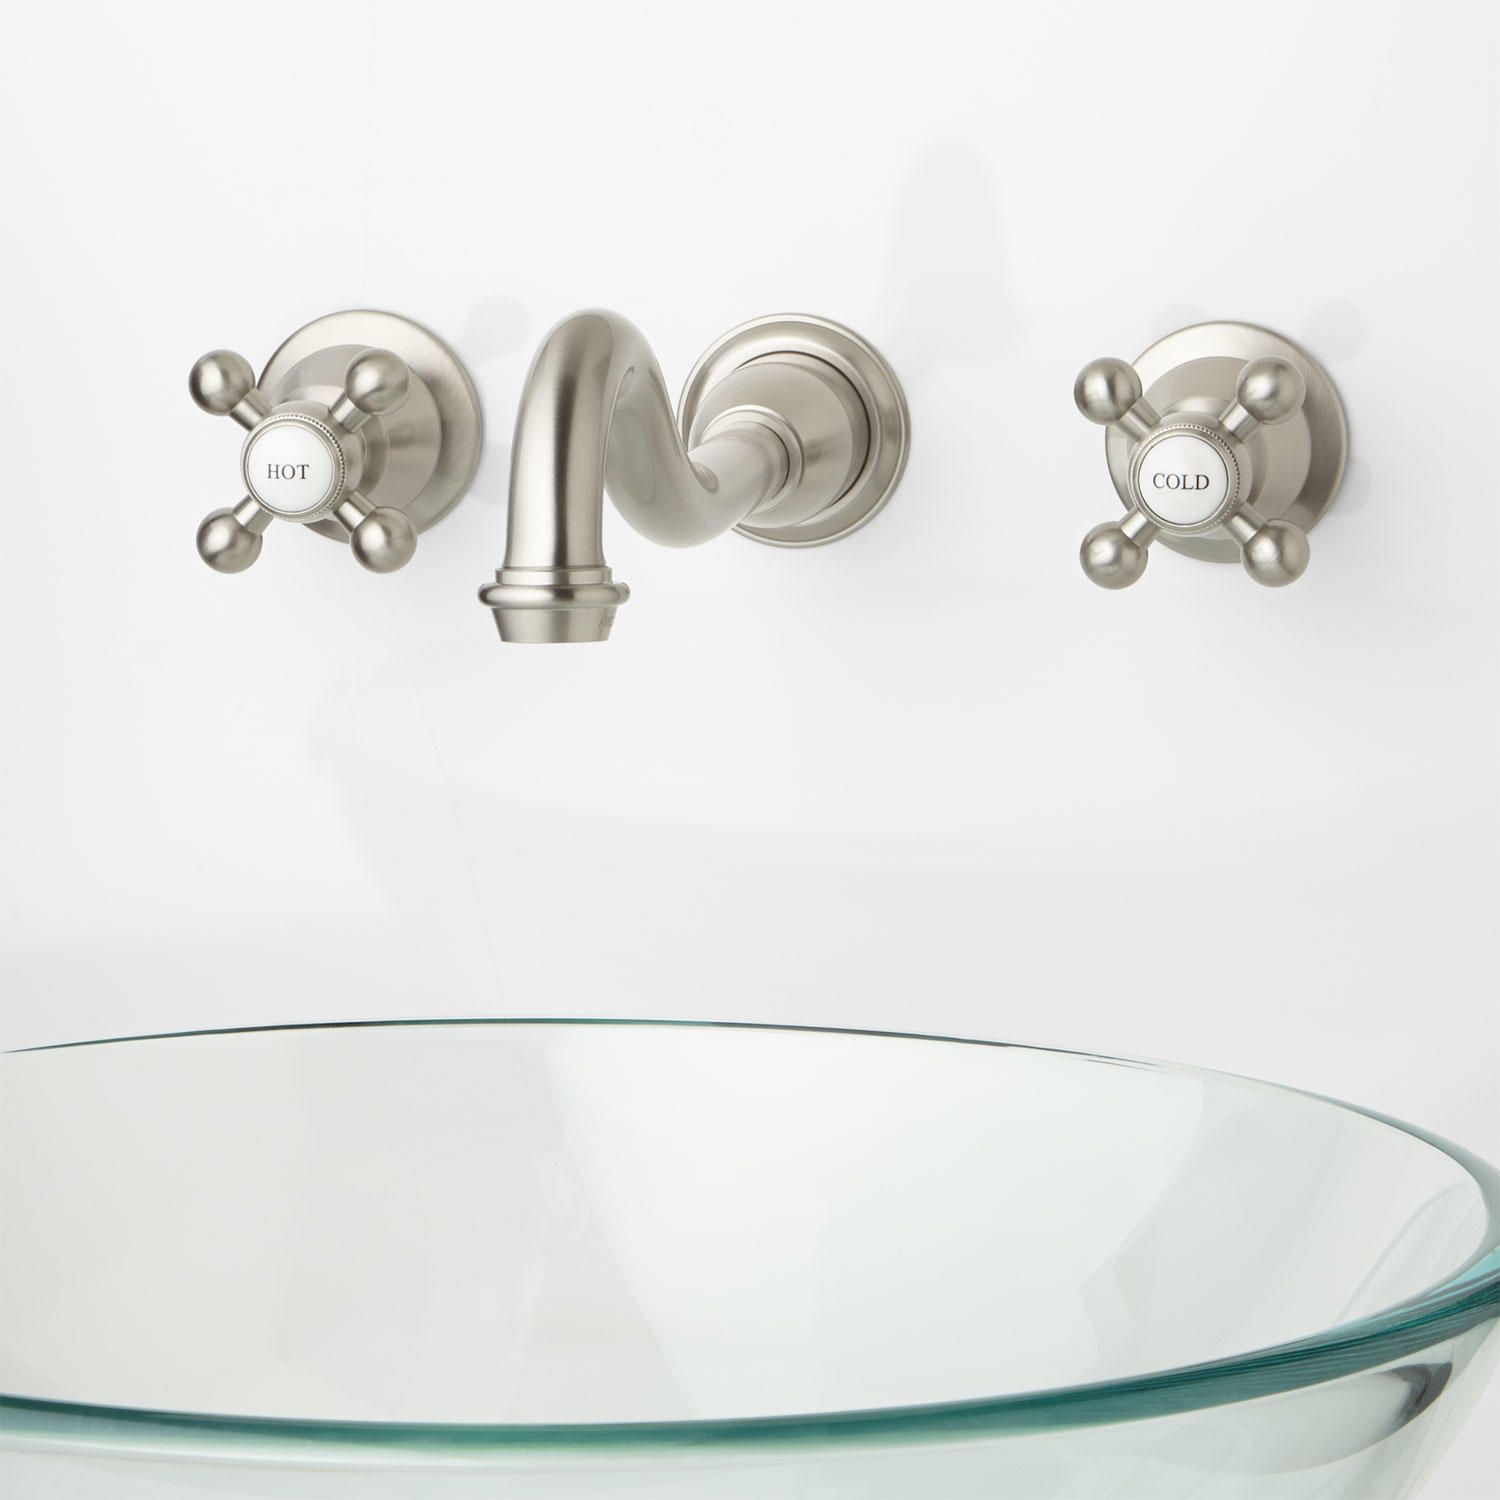 Reproduction Cross-Handle Sink Faucets | Faucet, Powder room and ...